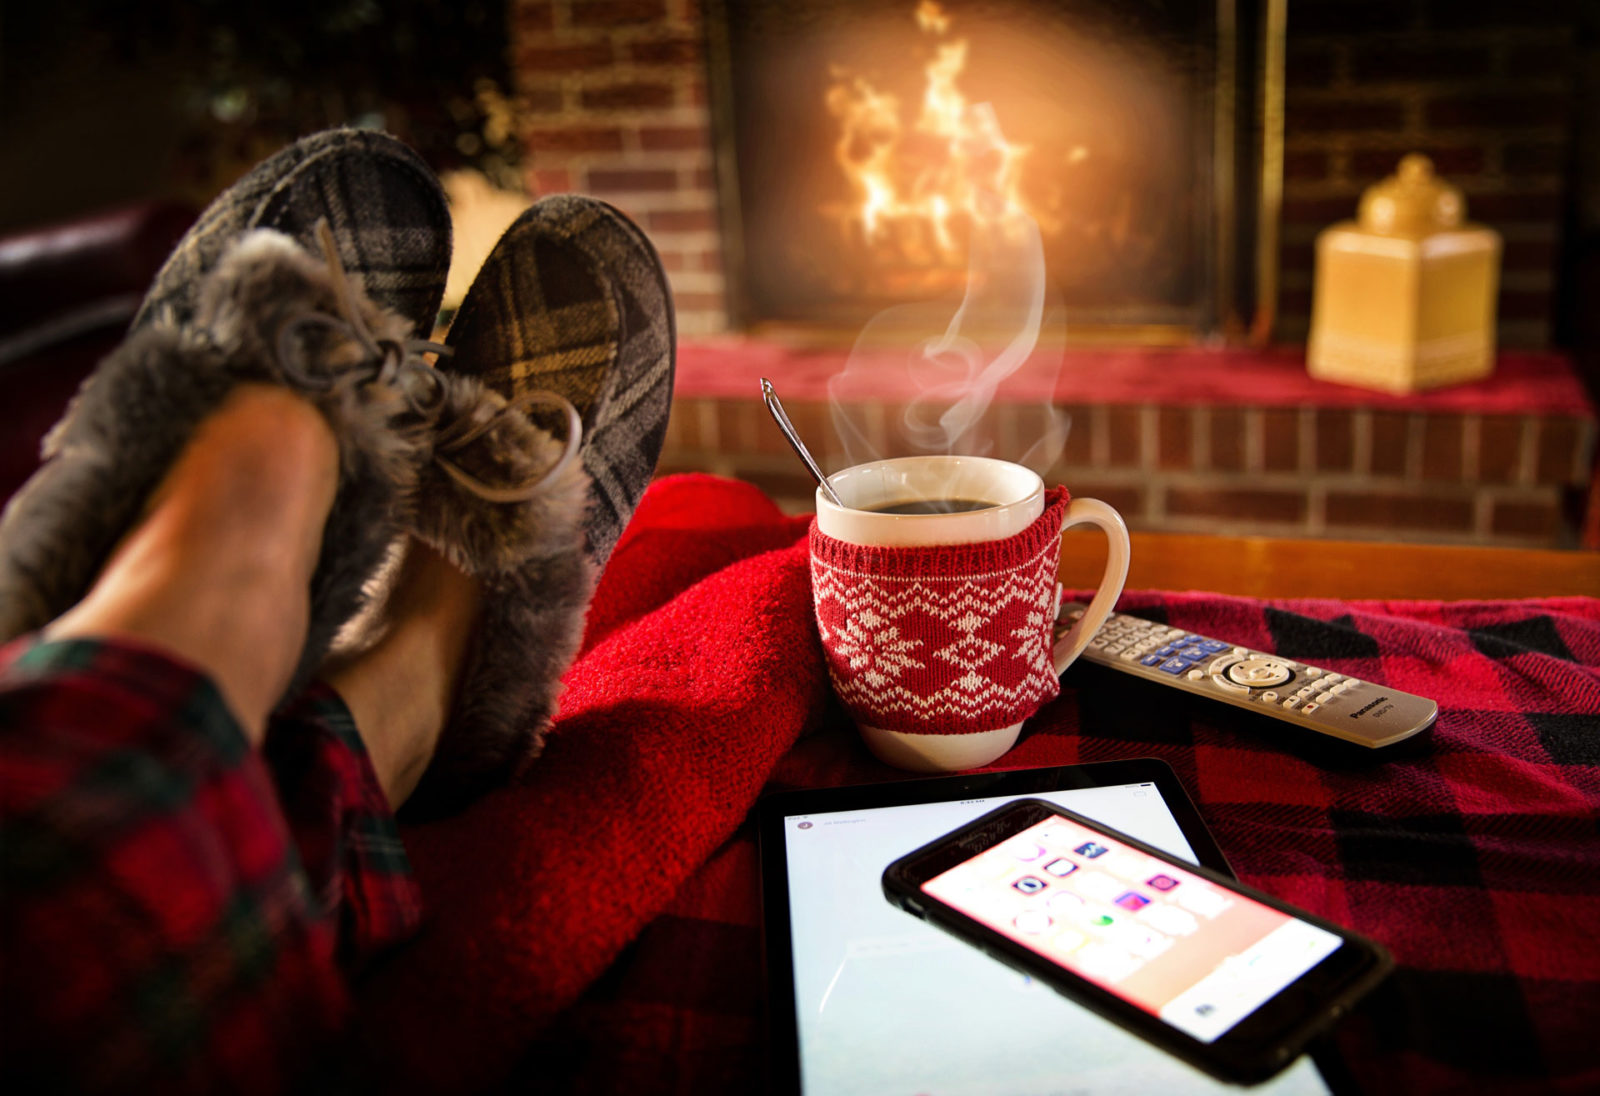 Person with slippers on with feet up in front of a fireplace with a mug of hot coco